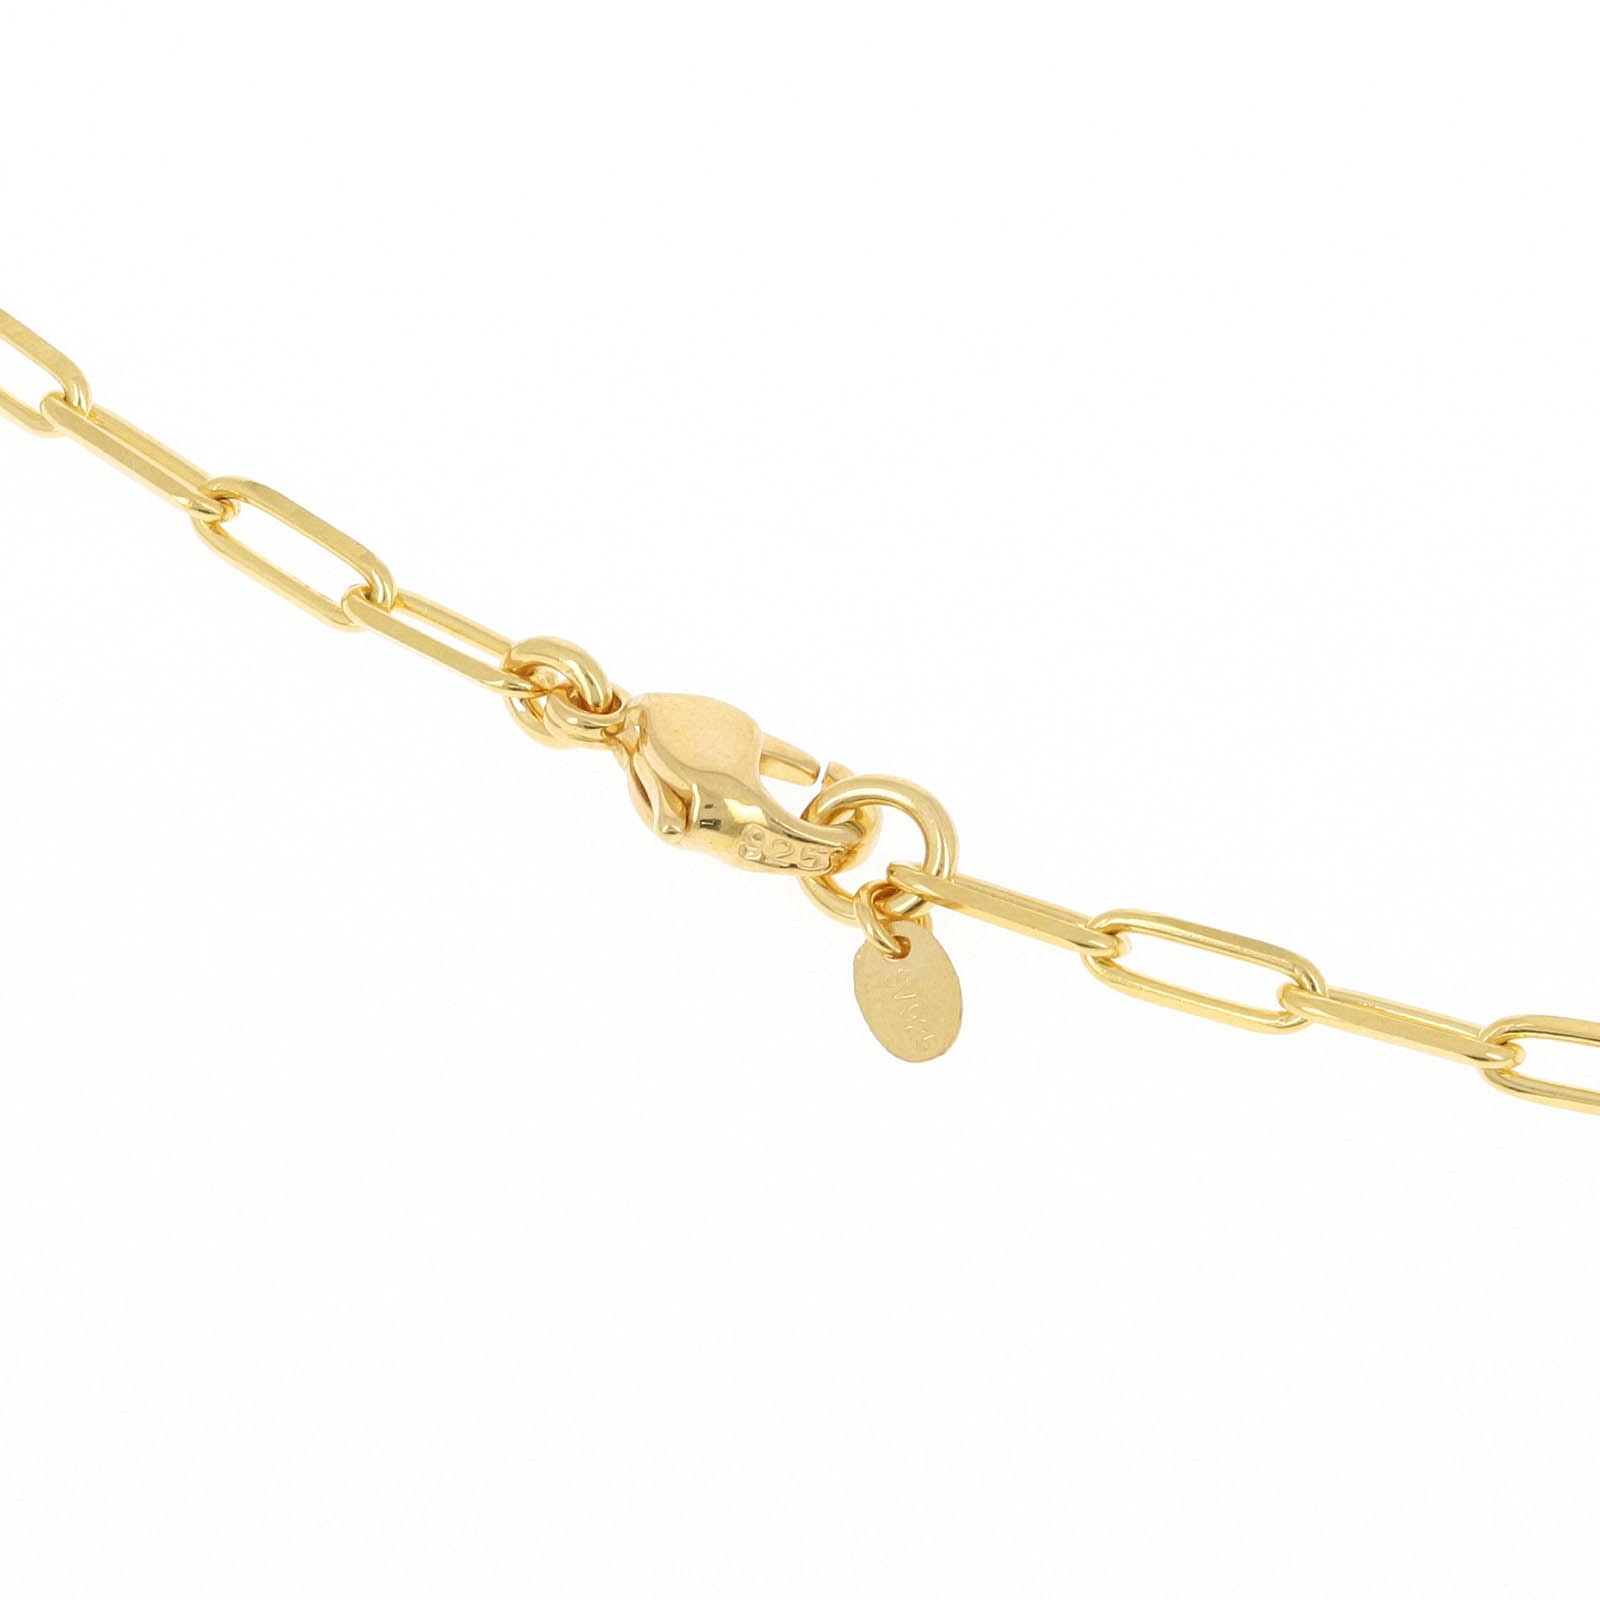 JUST GOOD Chain Necklace - Anchor - GV